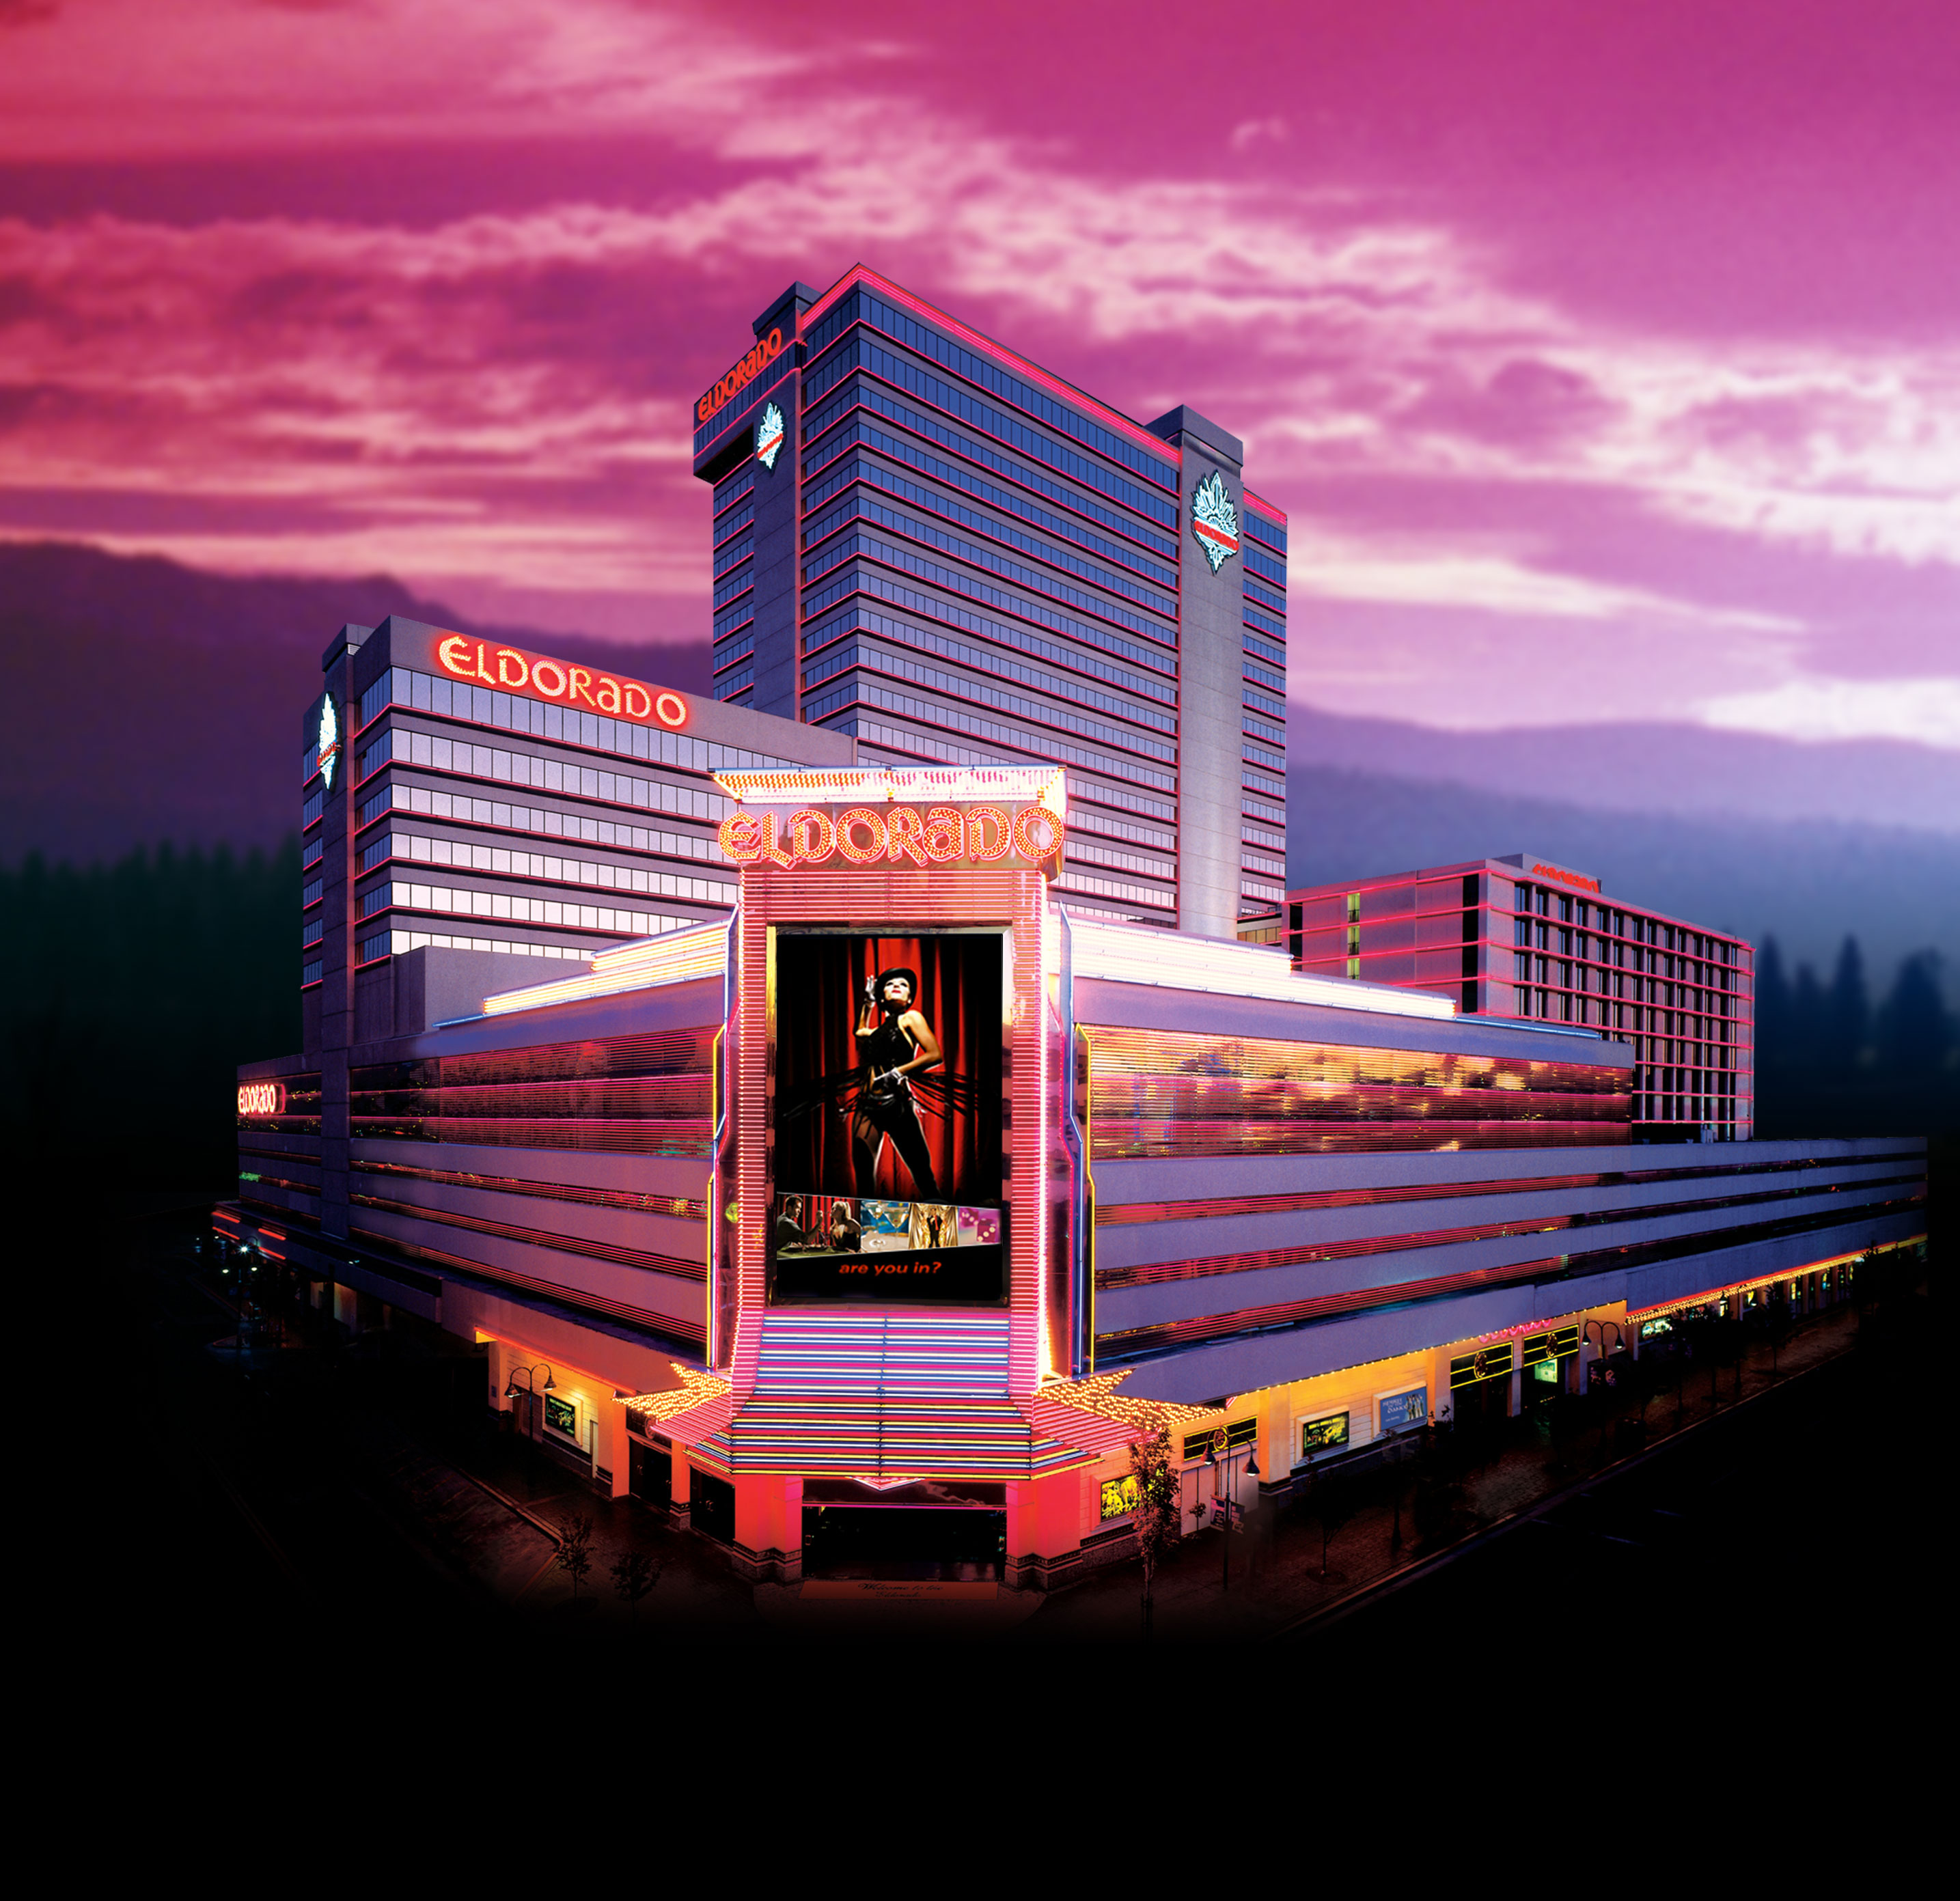 el dorado resort and casino